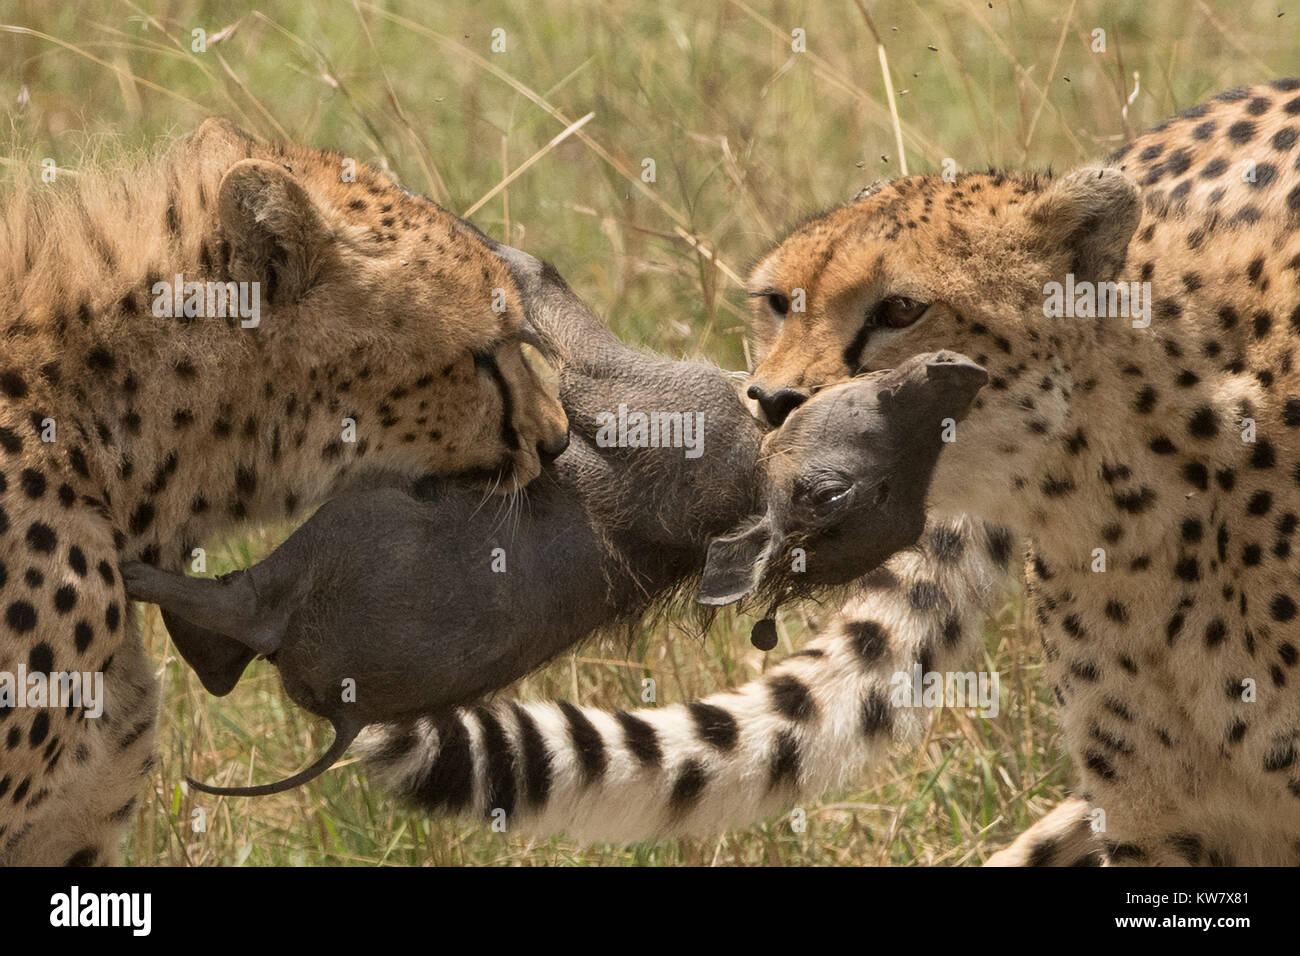 Cheetah (Acinonyx jubatus) cub and her sister tugging at a baby warthog (Phacochoerus africans) after catching it - Stock Image